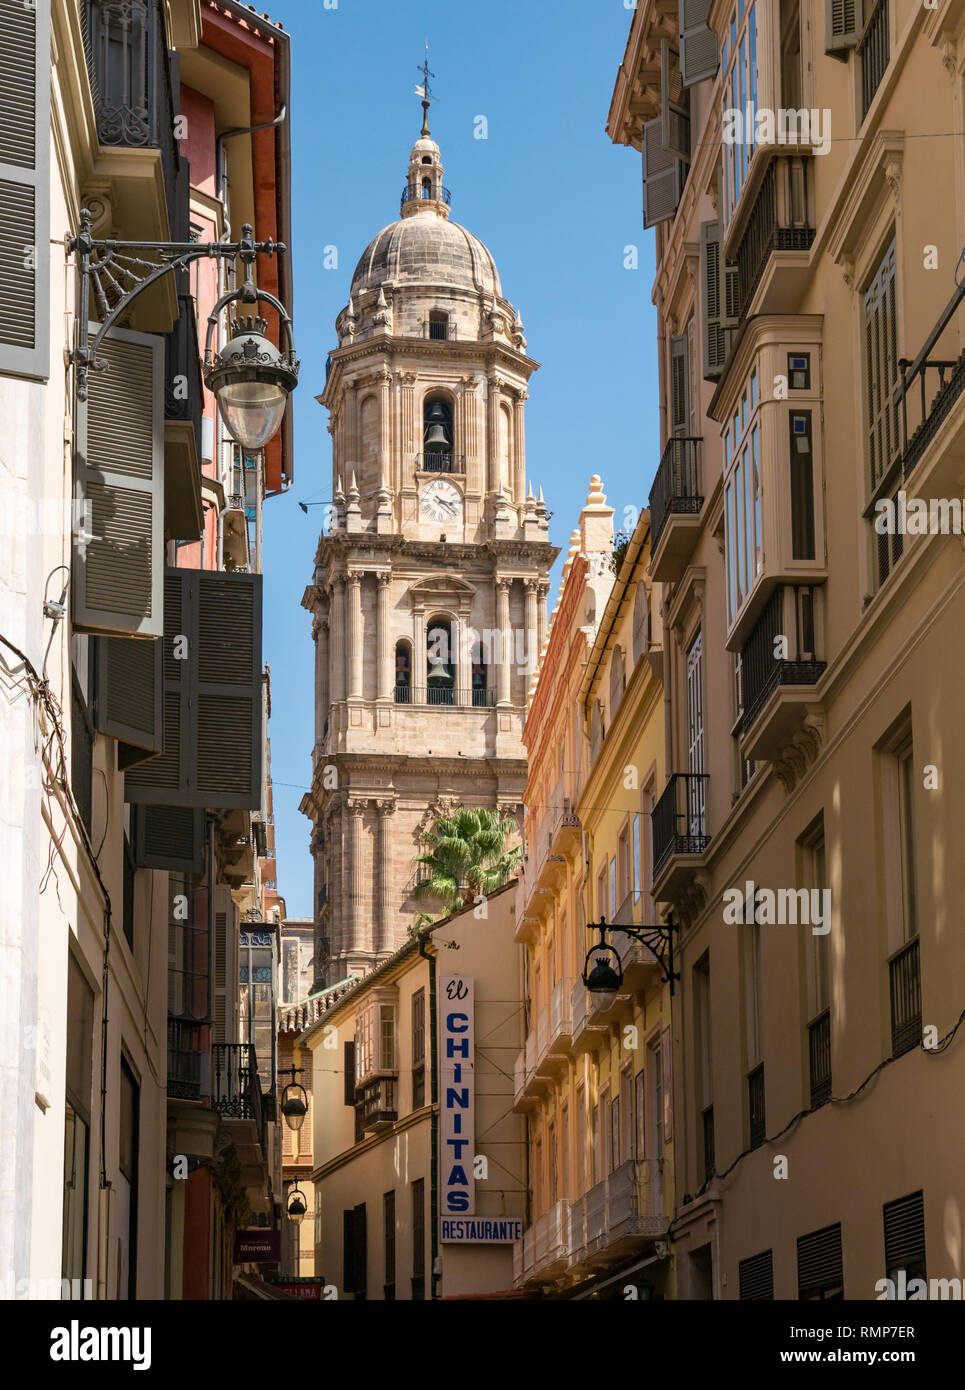 View of bell tower of Malaga cathedral along narrow street, Malaga old town, Andalusia, Spain - Stock Image